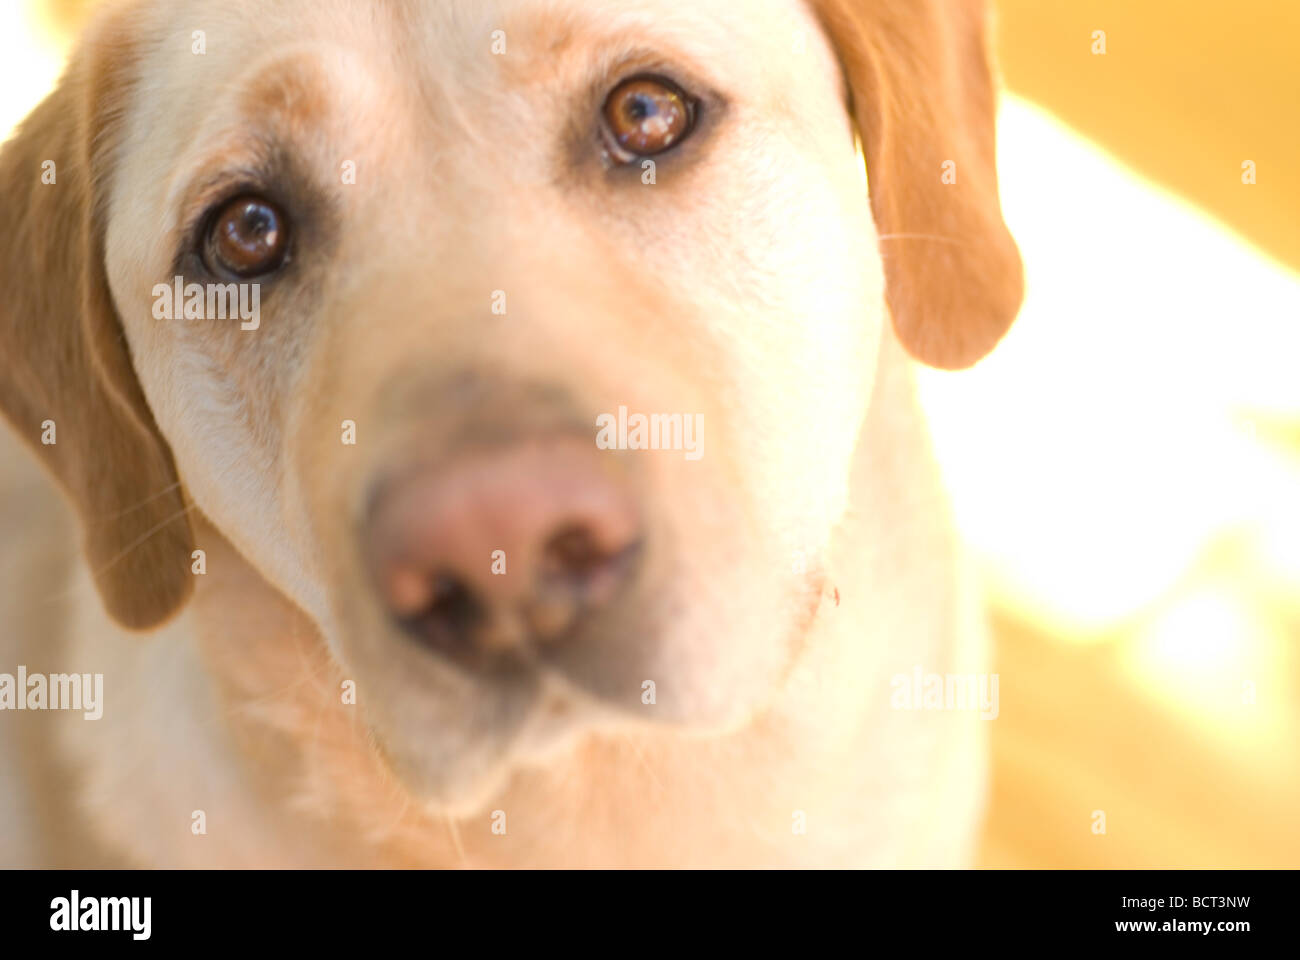 dog- labrador - Stock Image